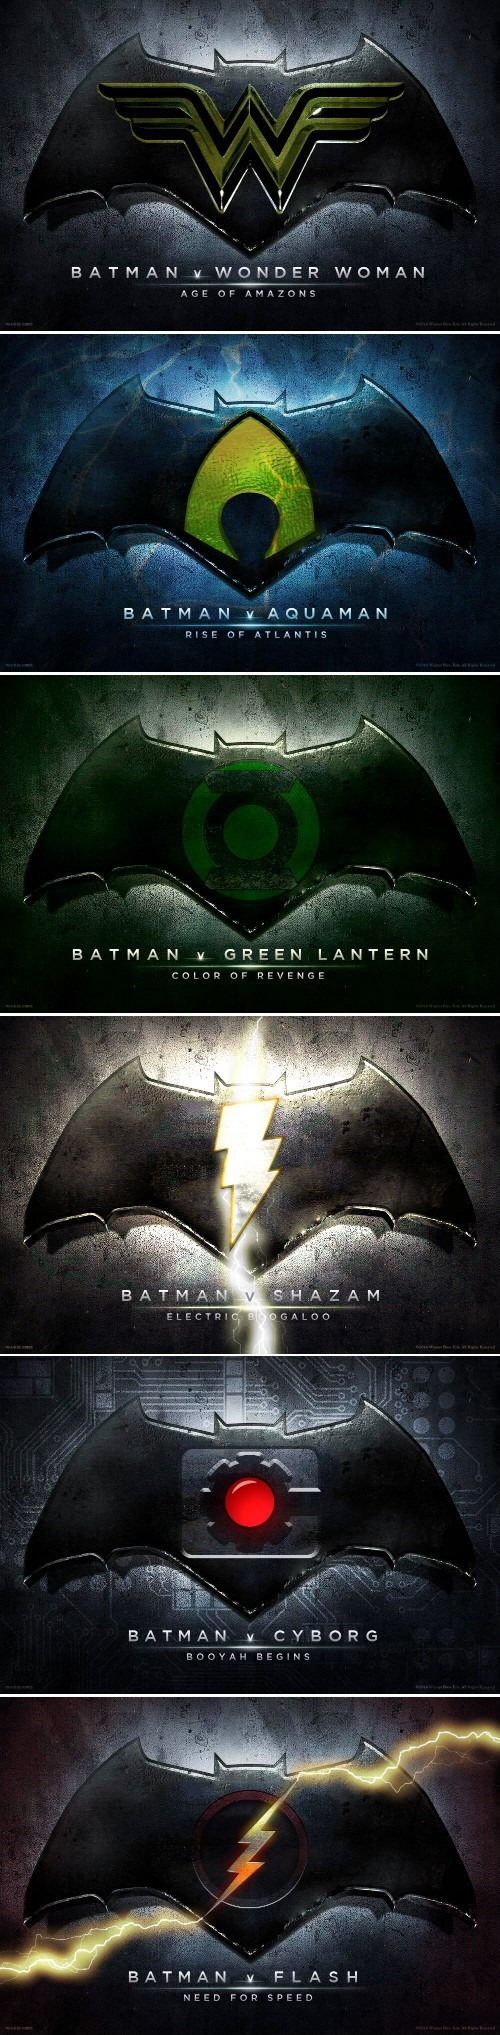 justice league logo Batman v Superman - 8198170112